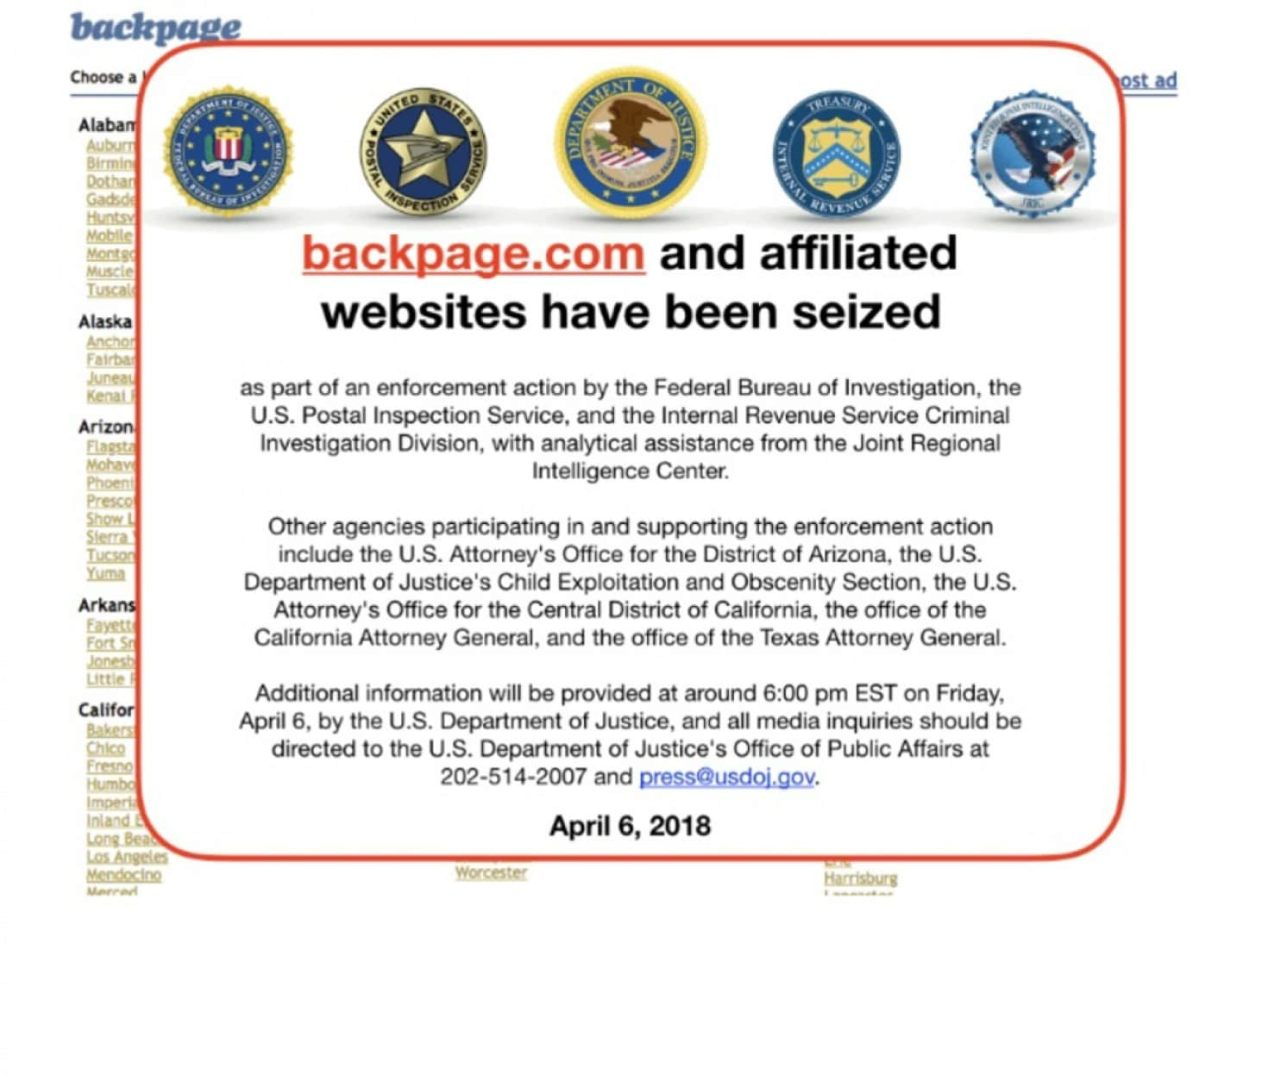 Is a new site trying to take Backpage's place?